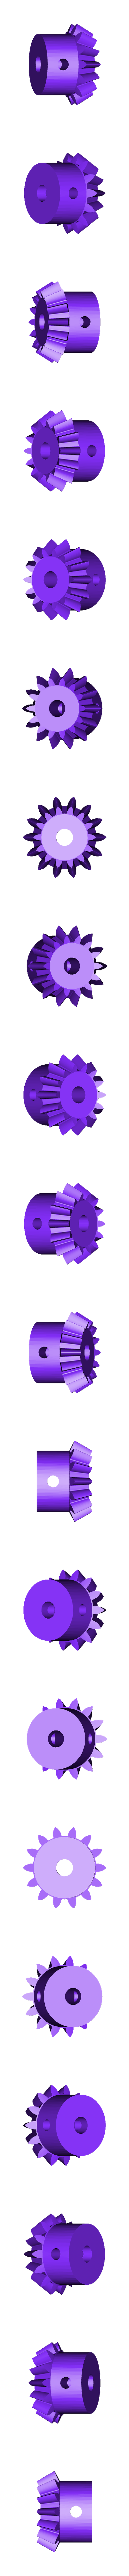 ISO_-_Straight_bevel_pinion_1.25M14PT_29GT_14.5PA_5FW_---14O5H40MD6.0N.STL Download free STL file Printed truck: Rear axle V1 • 3D print model, MrCrankyface